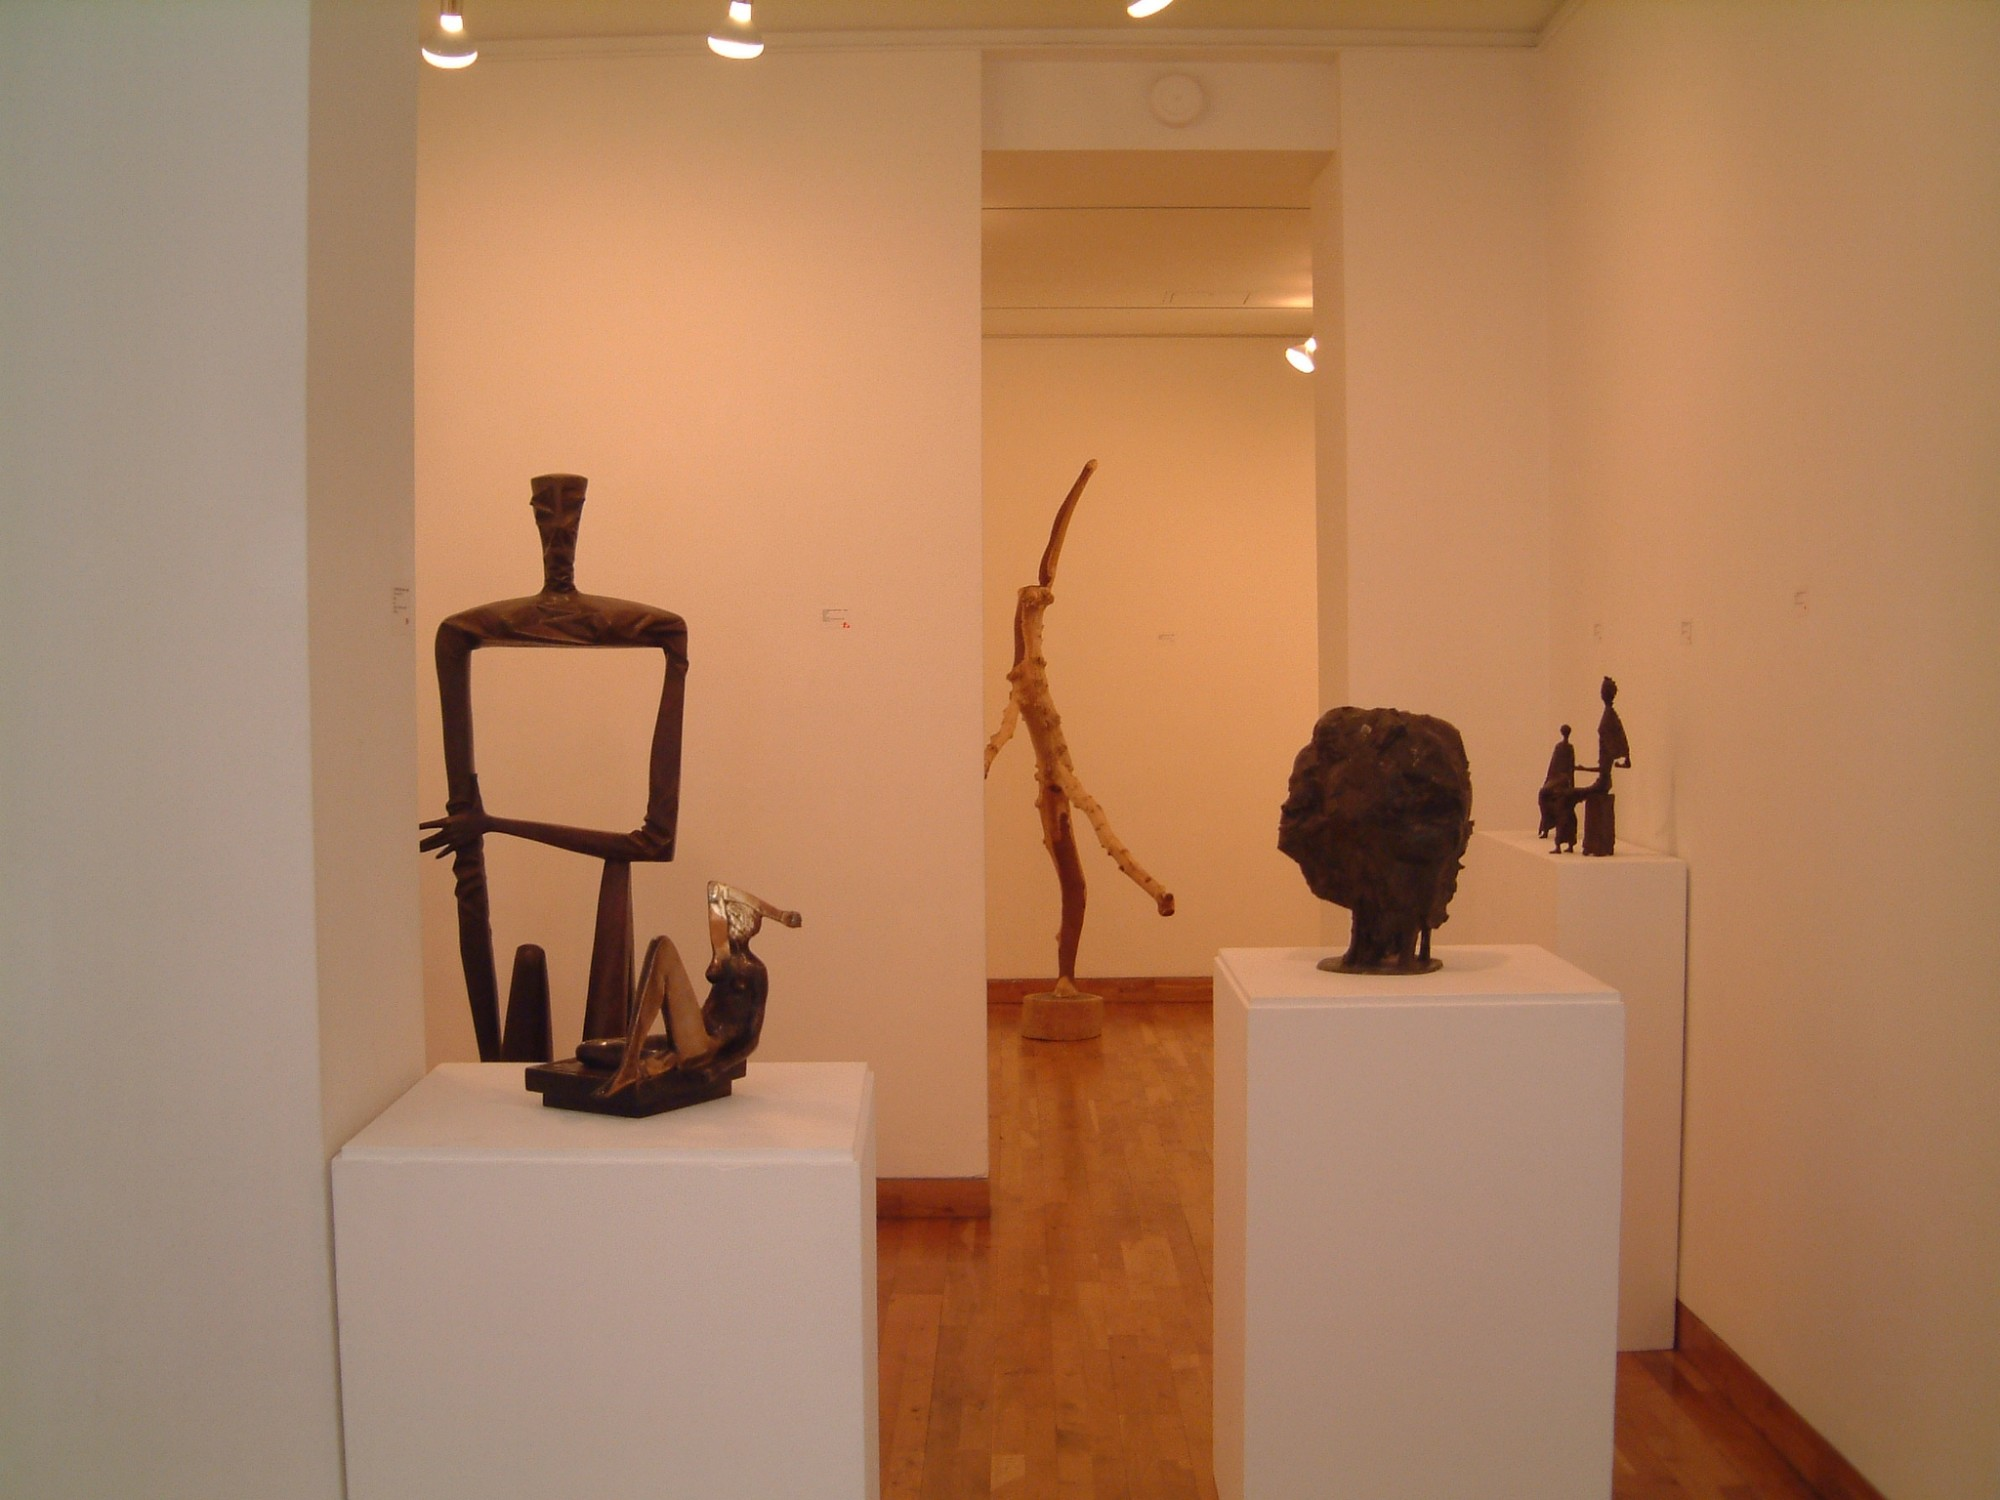 "<span class=""link fancybox-details-link""><a href=""/exhibitions/113/works/image_standalone467/"">View Detail Page</a></span><p>F. E. MCWILLIAM 